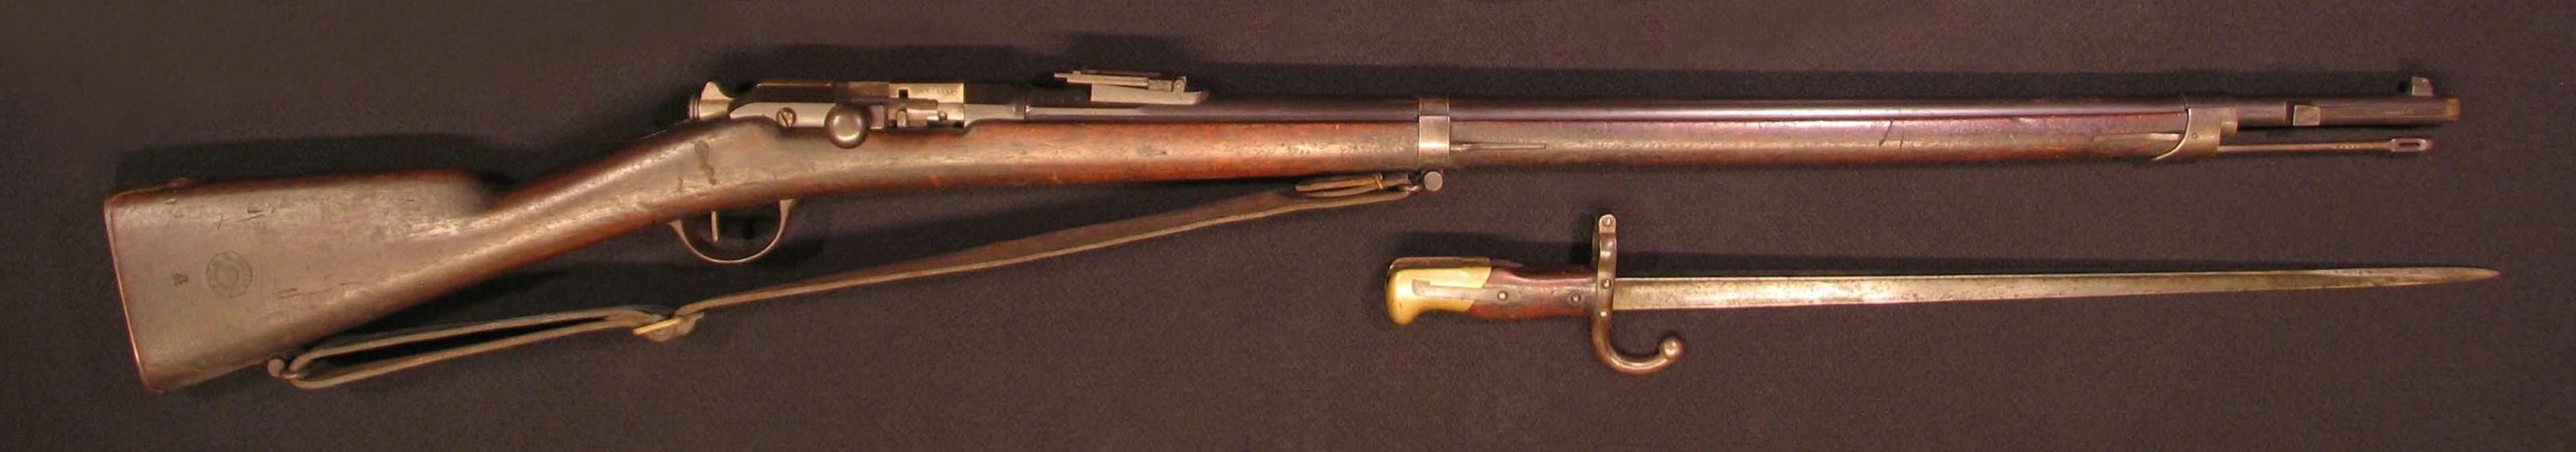 Click image for larger version.  Name:French Mle 1874 Gras Infantry Rifle 01R.JPG Views:23 Size:168.9 KB ID:570706